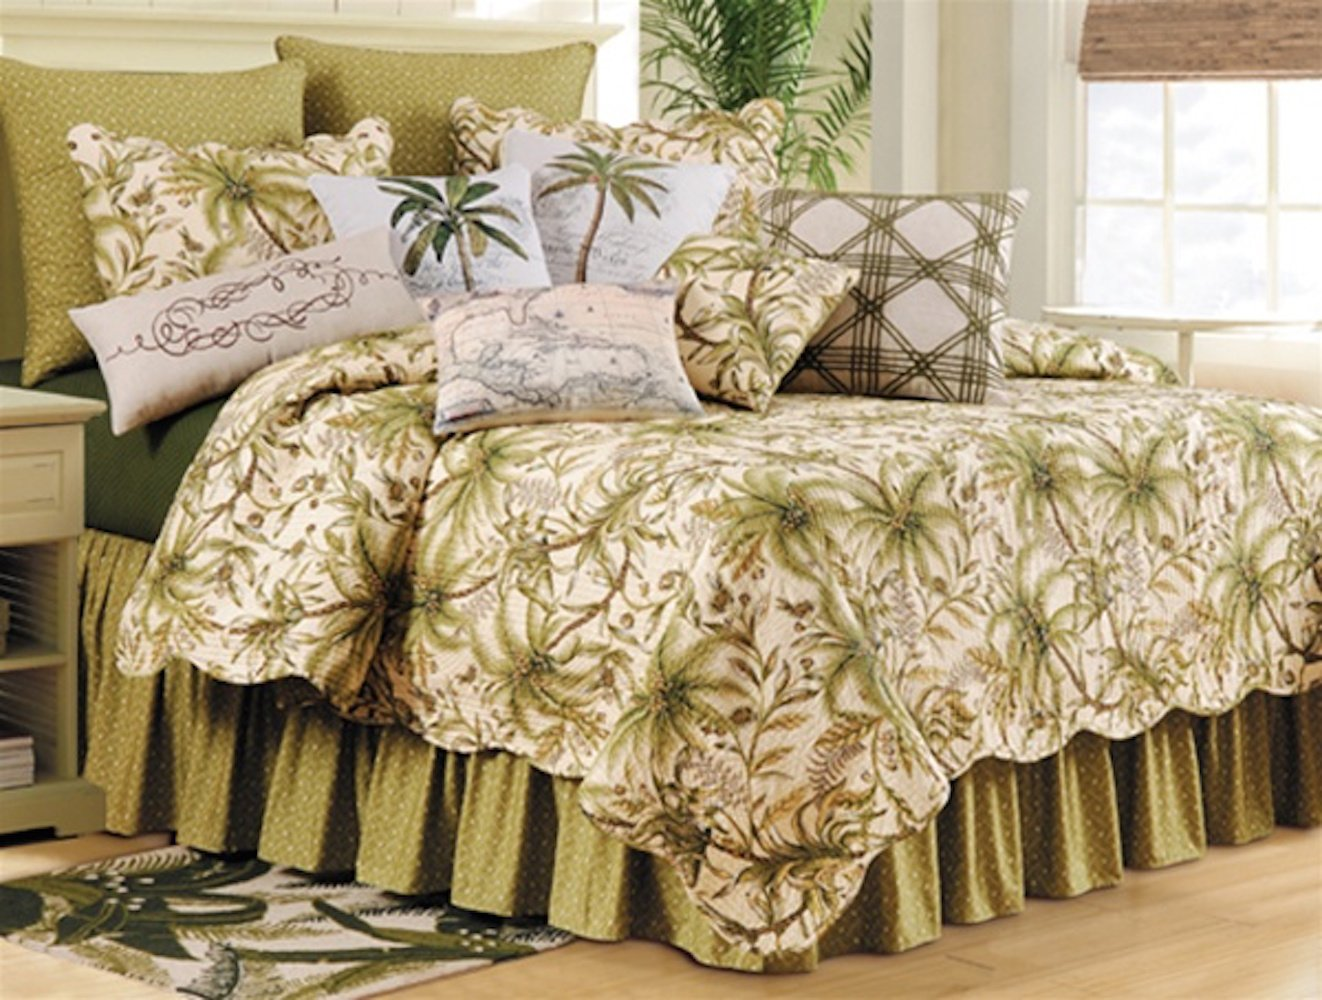 C & F Enterprises Barbados Sand Quilt Set